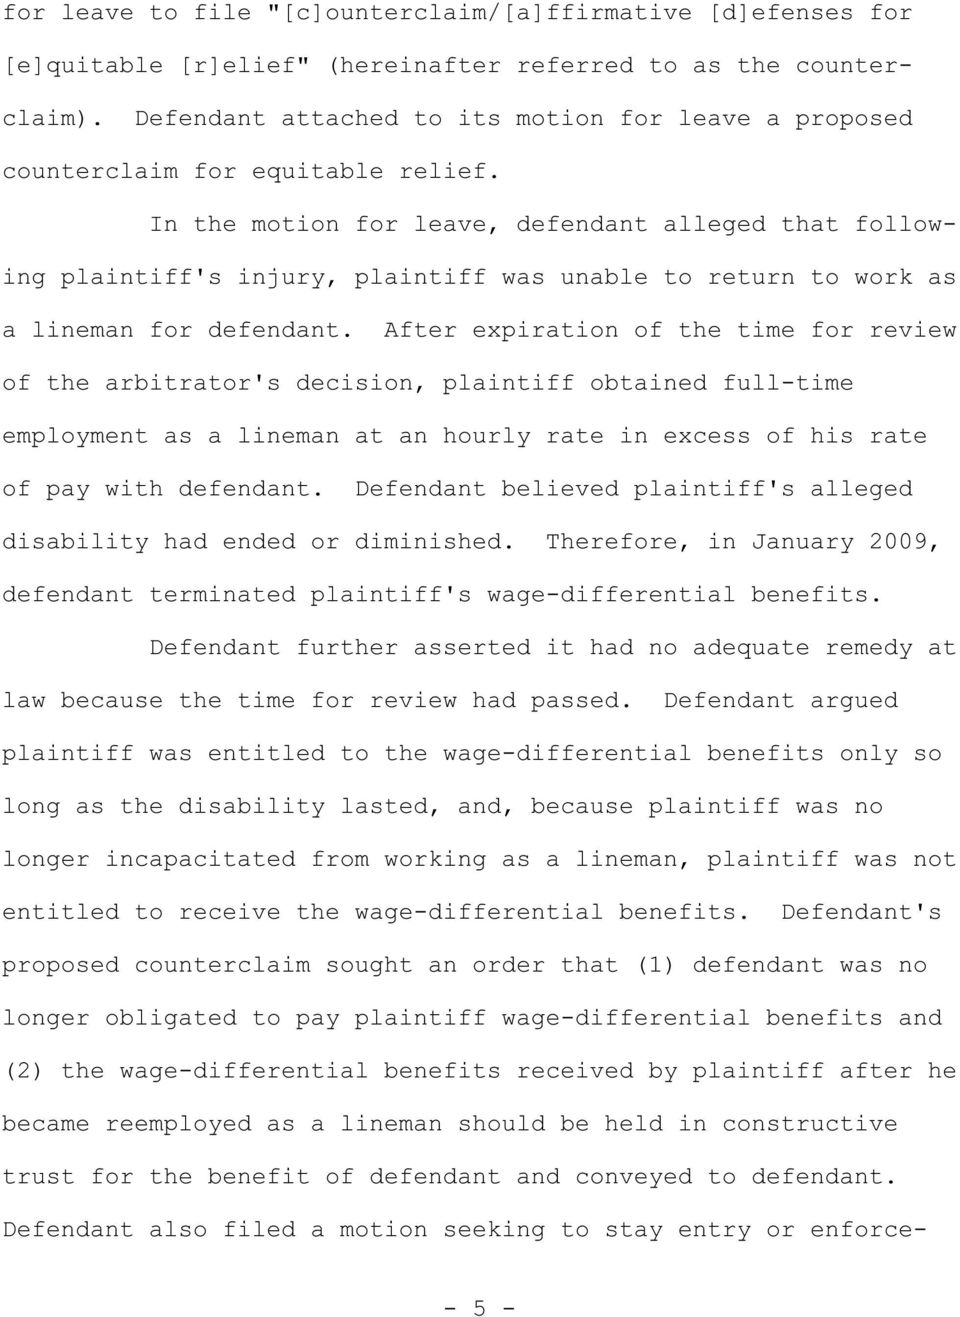 In the motion for leave, defendant alleged that following plaintiff's injury, plaintiff was unable to return to work as a lineman for defendant.